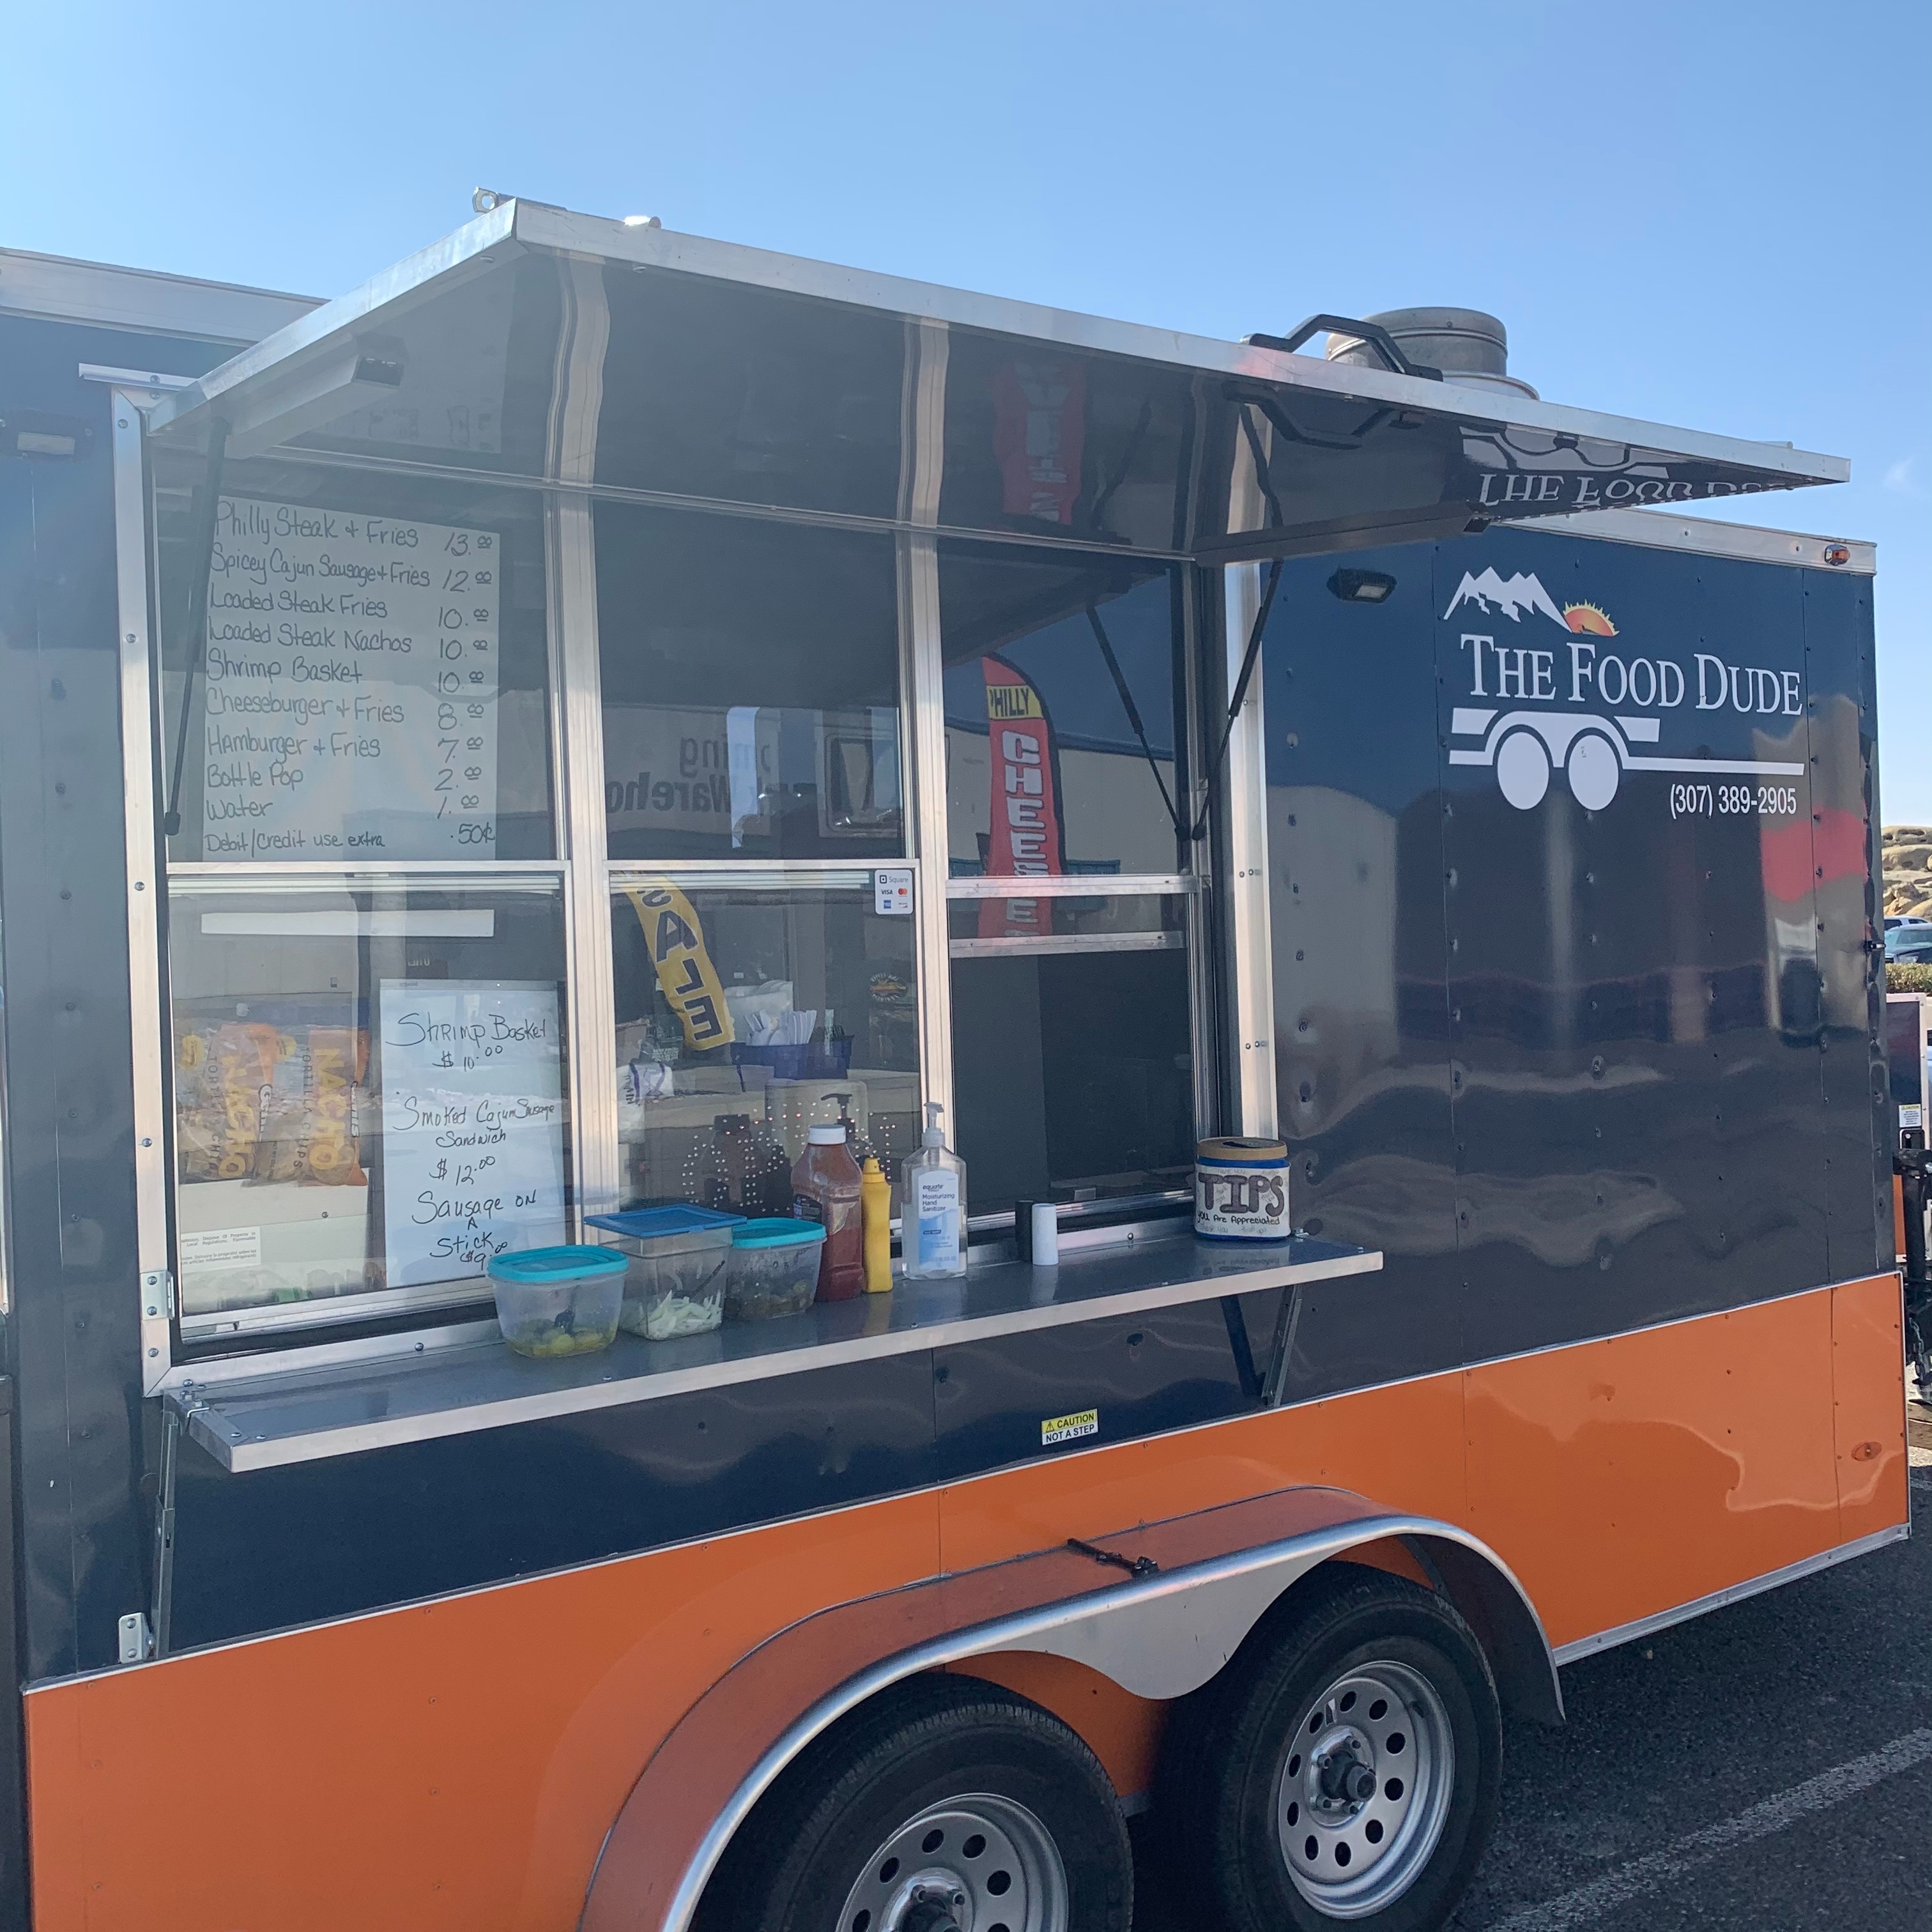 The Food Dude food truck profile image